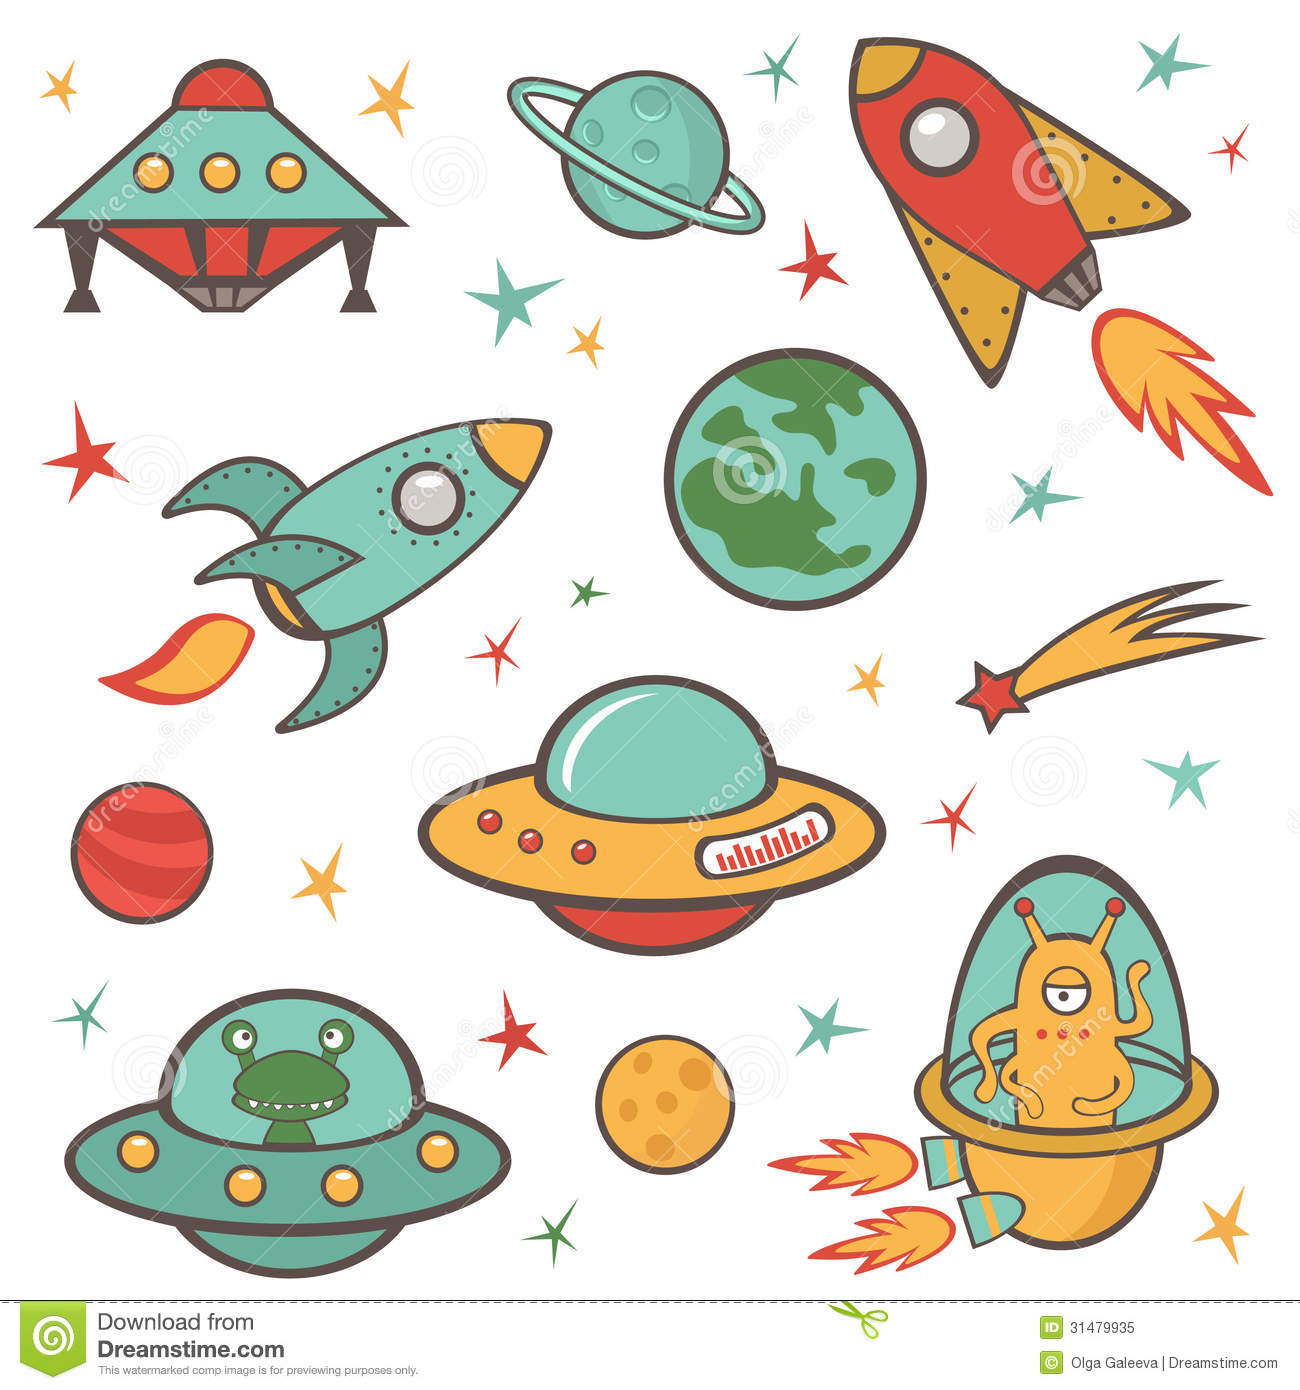 Outer space clipart - ClipartFest